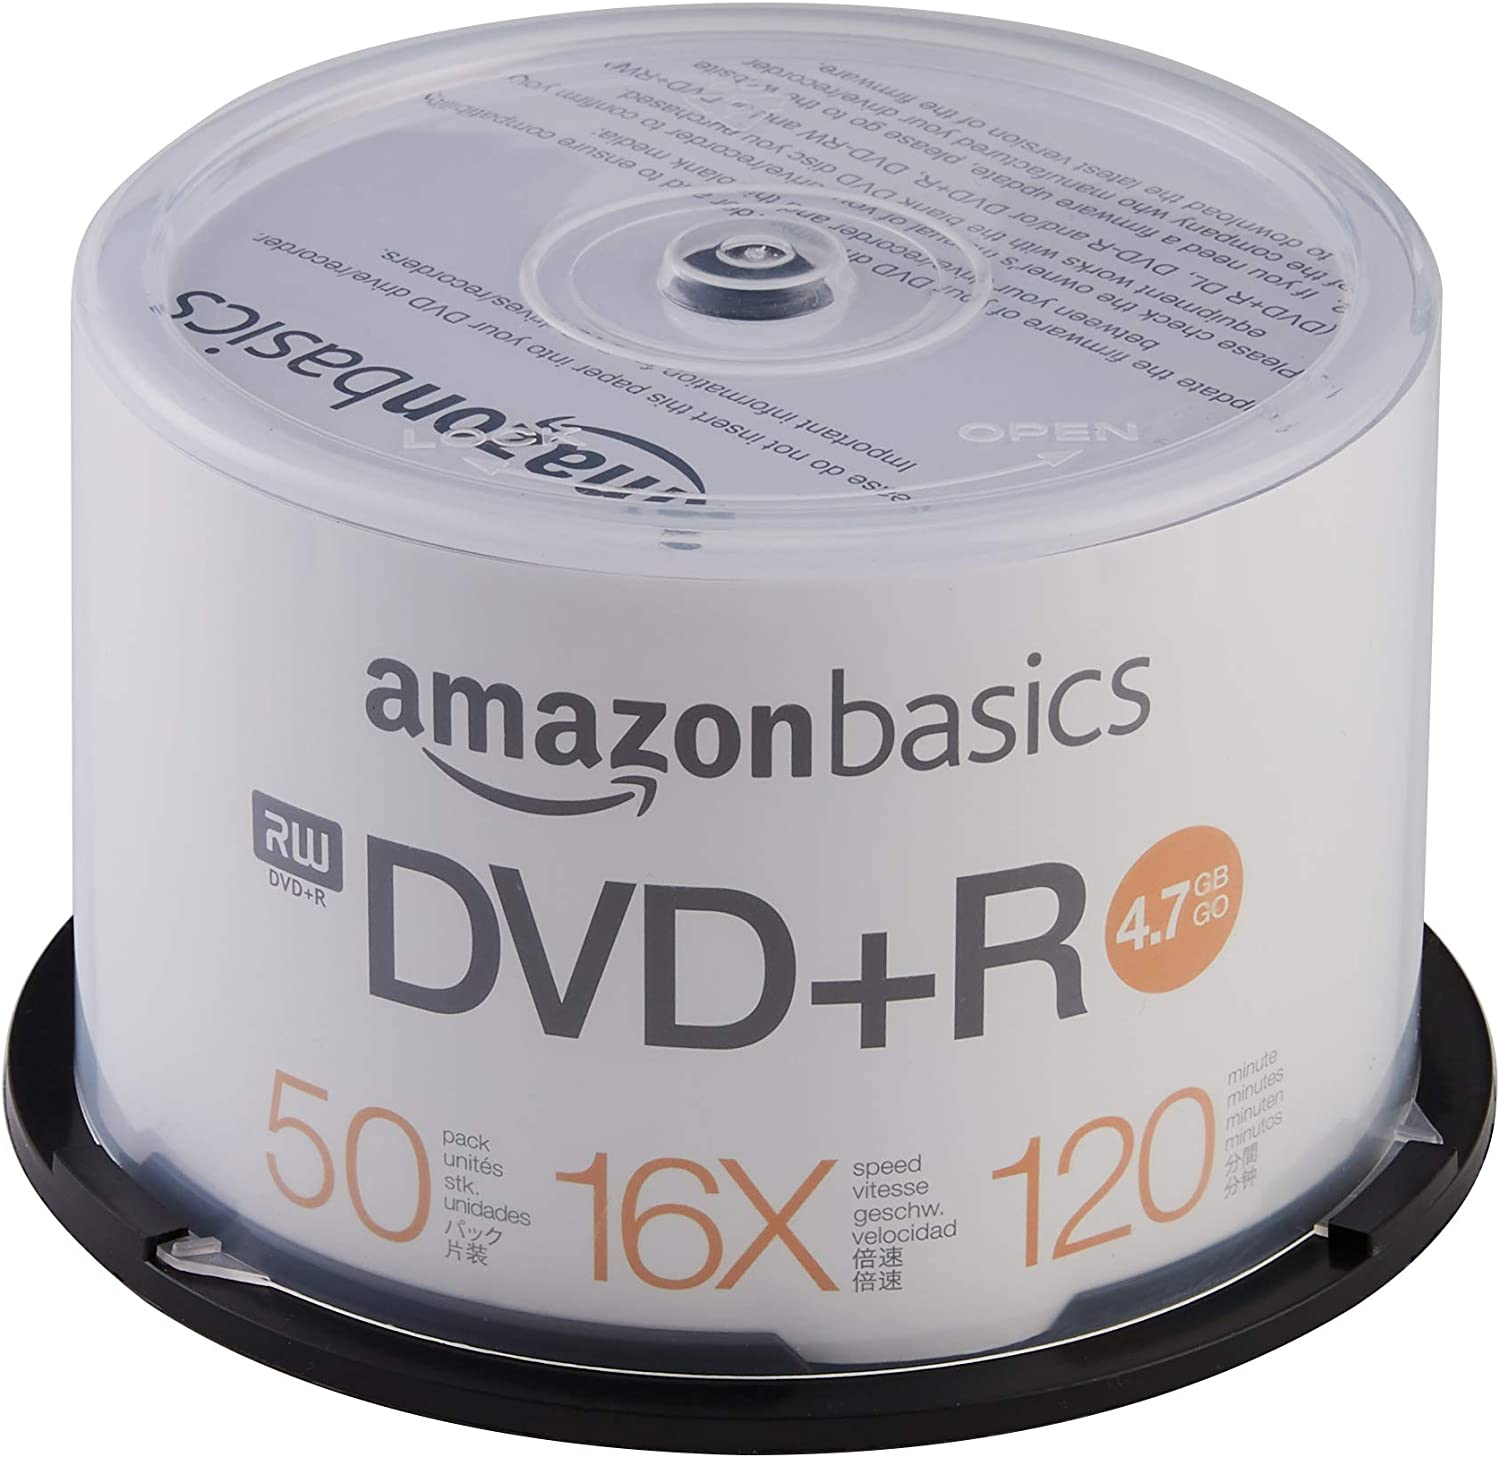 AmazonBasics 4.7 GB blank 16x DVD+R - 50 Pack Spindle